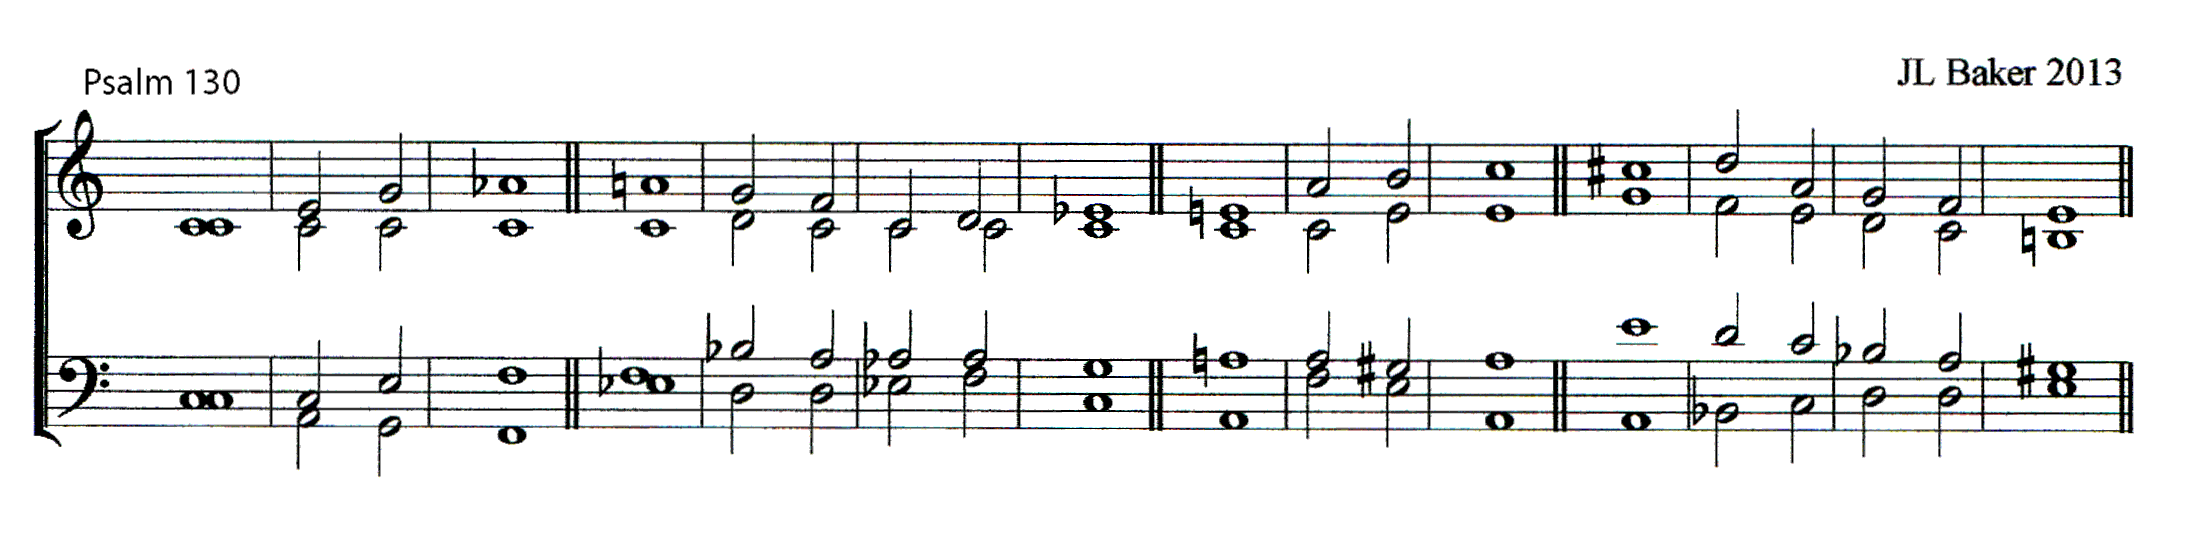 Double chant in C major by John Lawson Baker (1939-2015) set to Psalm 130